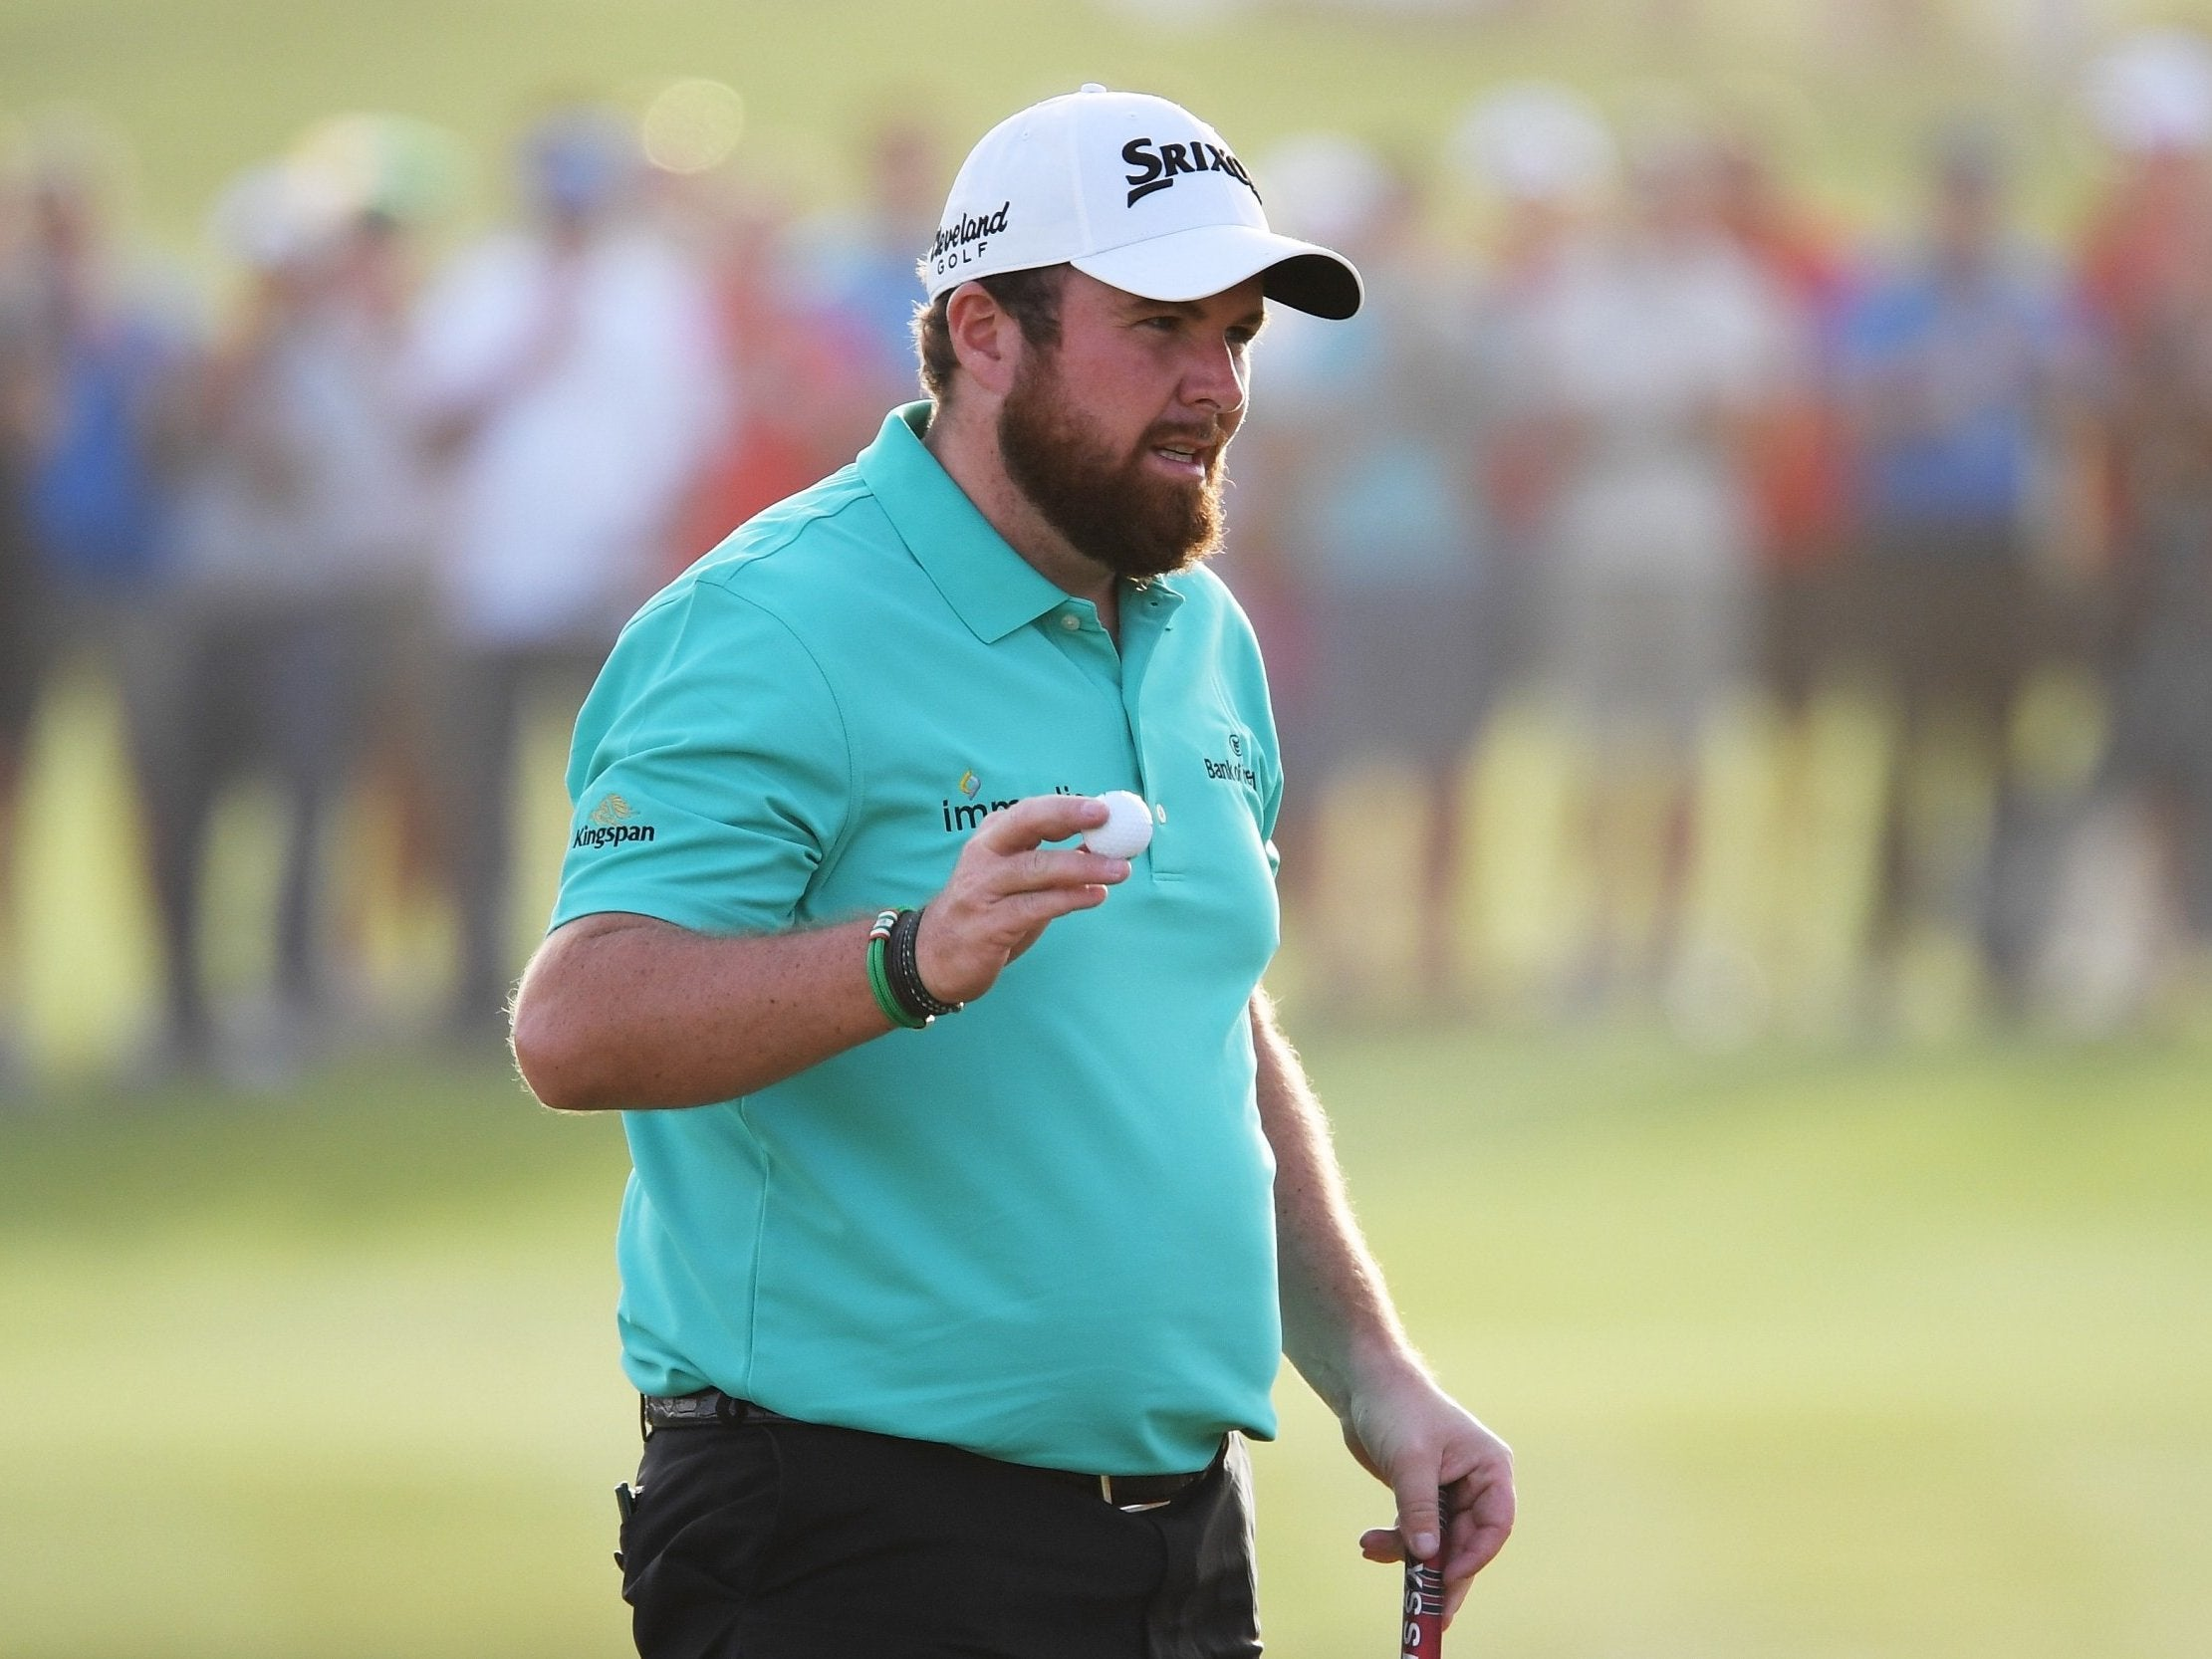 Abu Dhabi HSBC Championship: Shane Lowry verges on first win in three years as Louis Oosthuizen slips